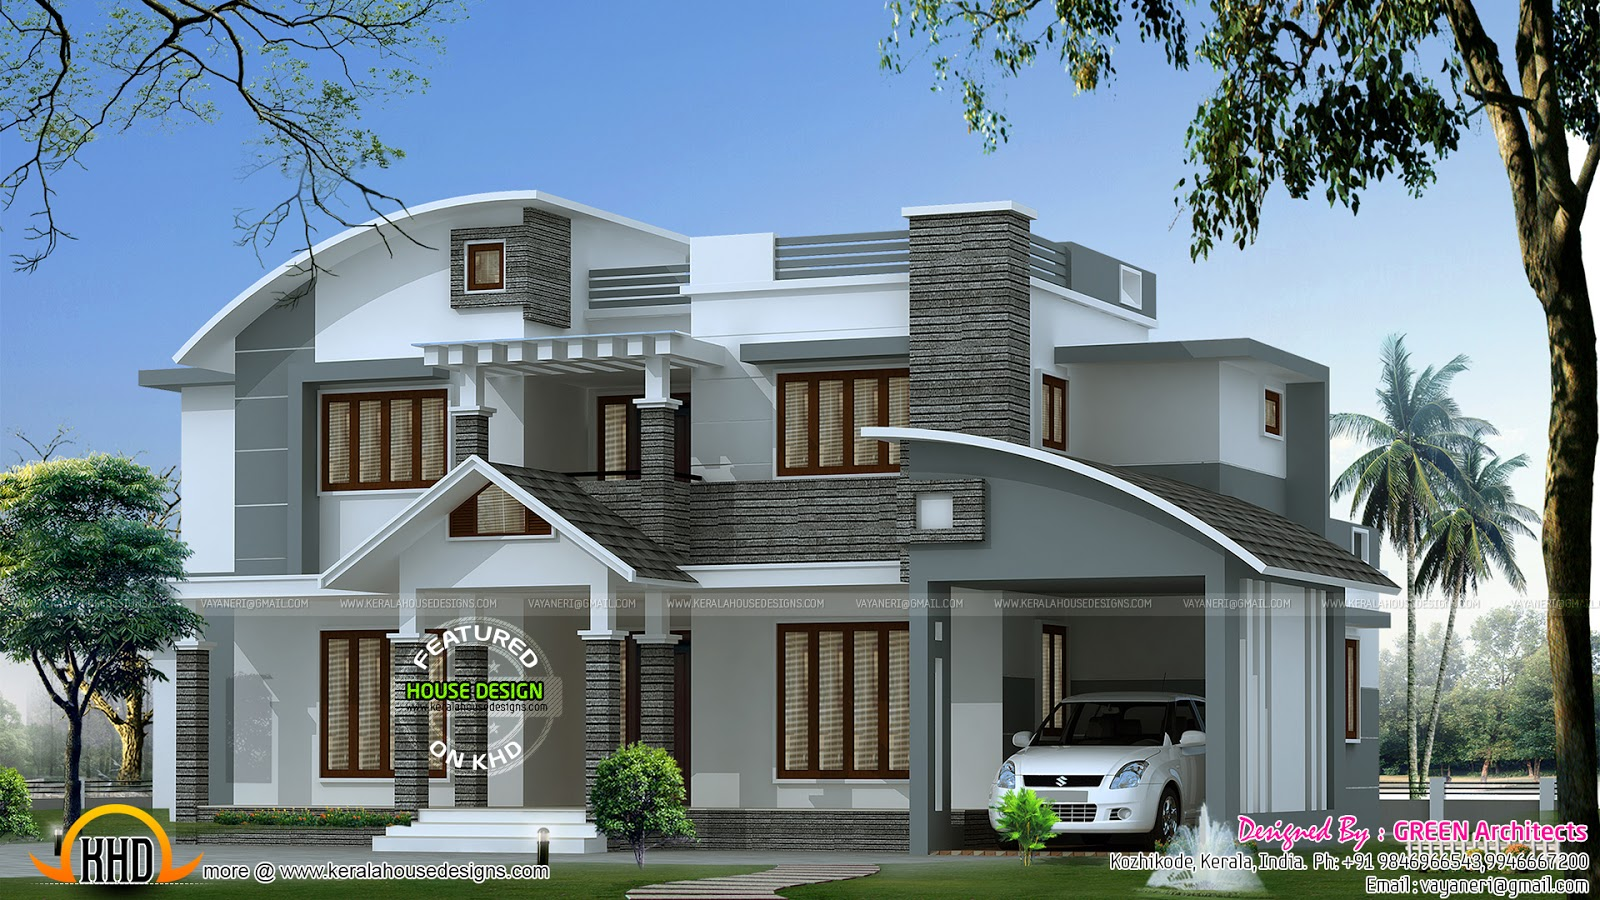 Contemporary mix house in 2500 sq ft kerala home design for Modern house plans under 2500 square feet